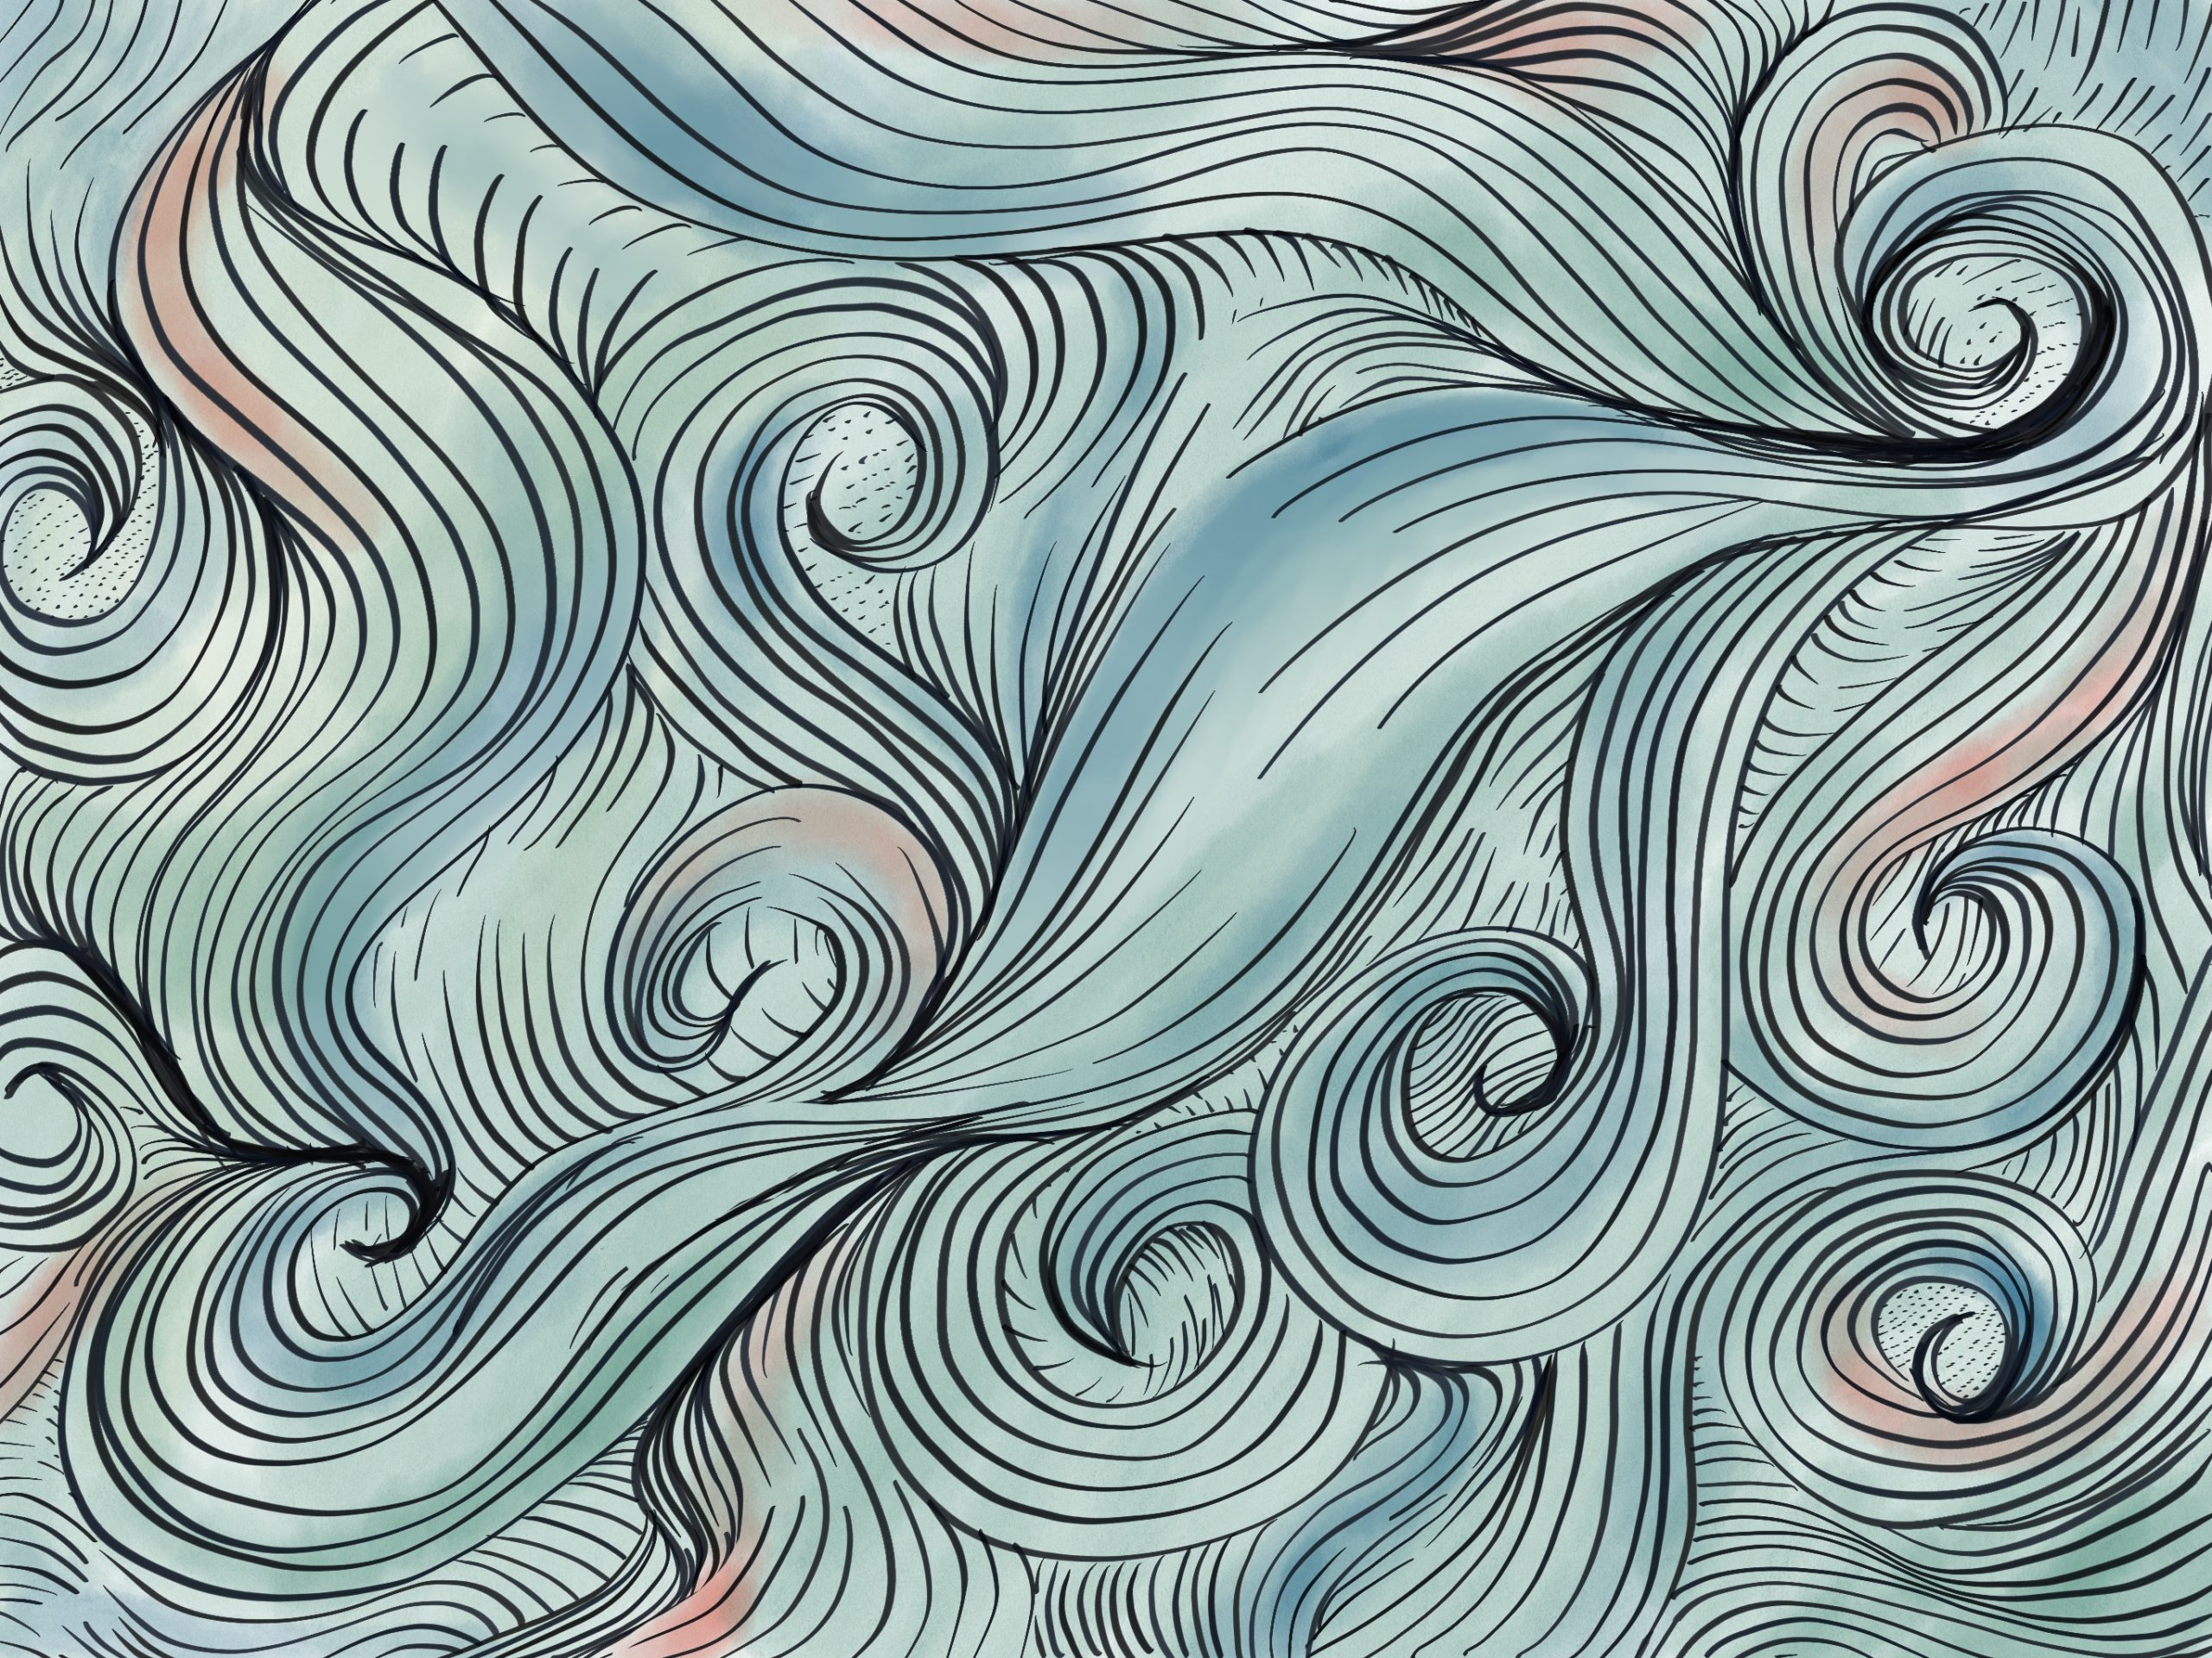 swirls of color and lines